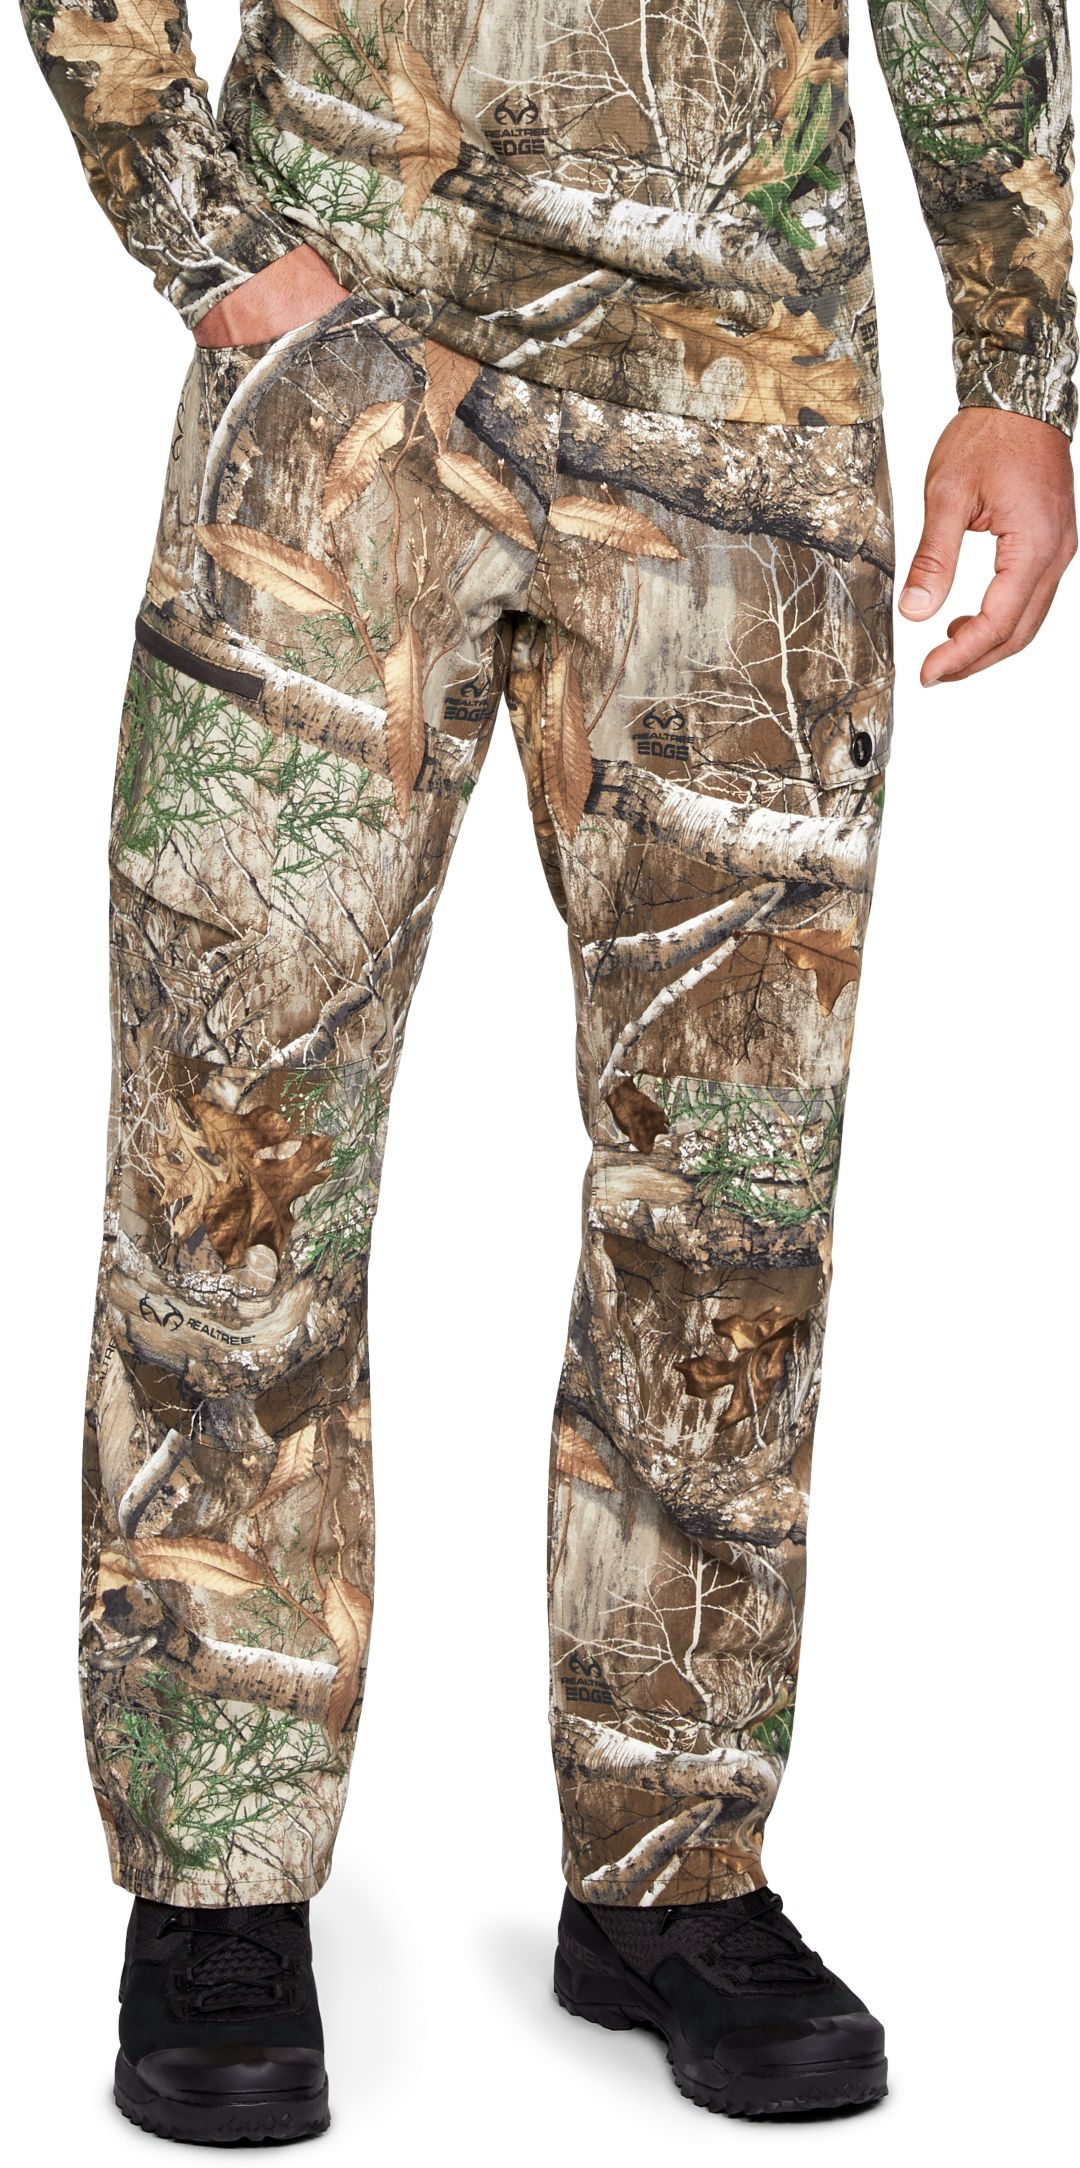 2fffc0d7562f2 Under Armour Men's Field OPS Hunting Pants | DICK'S Sporting Goods